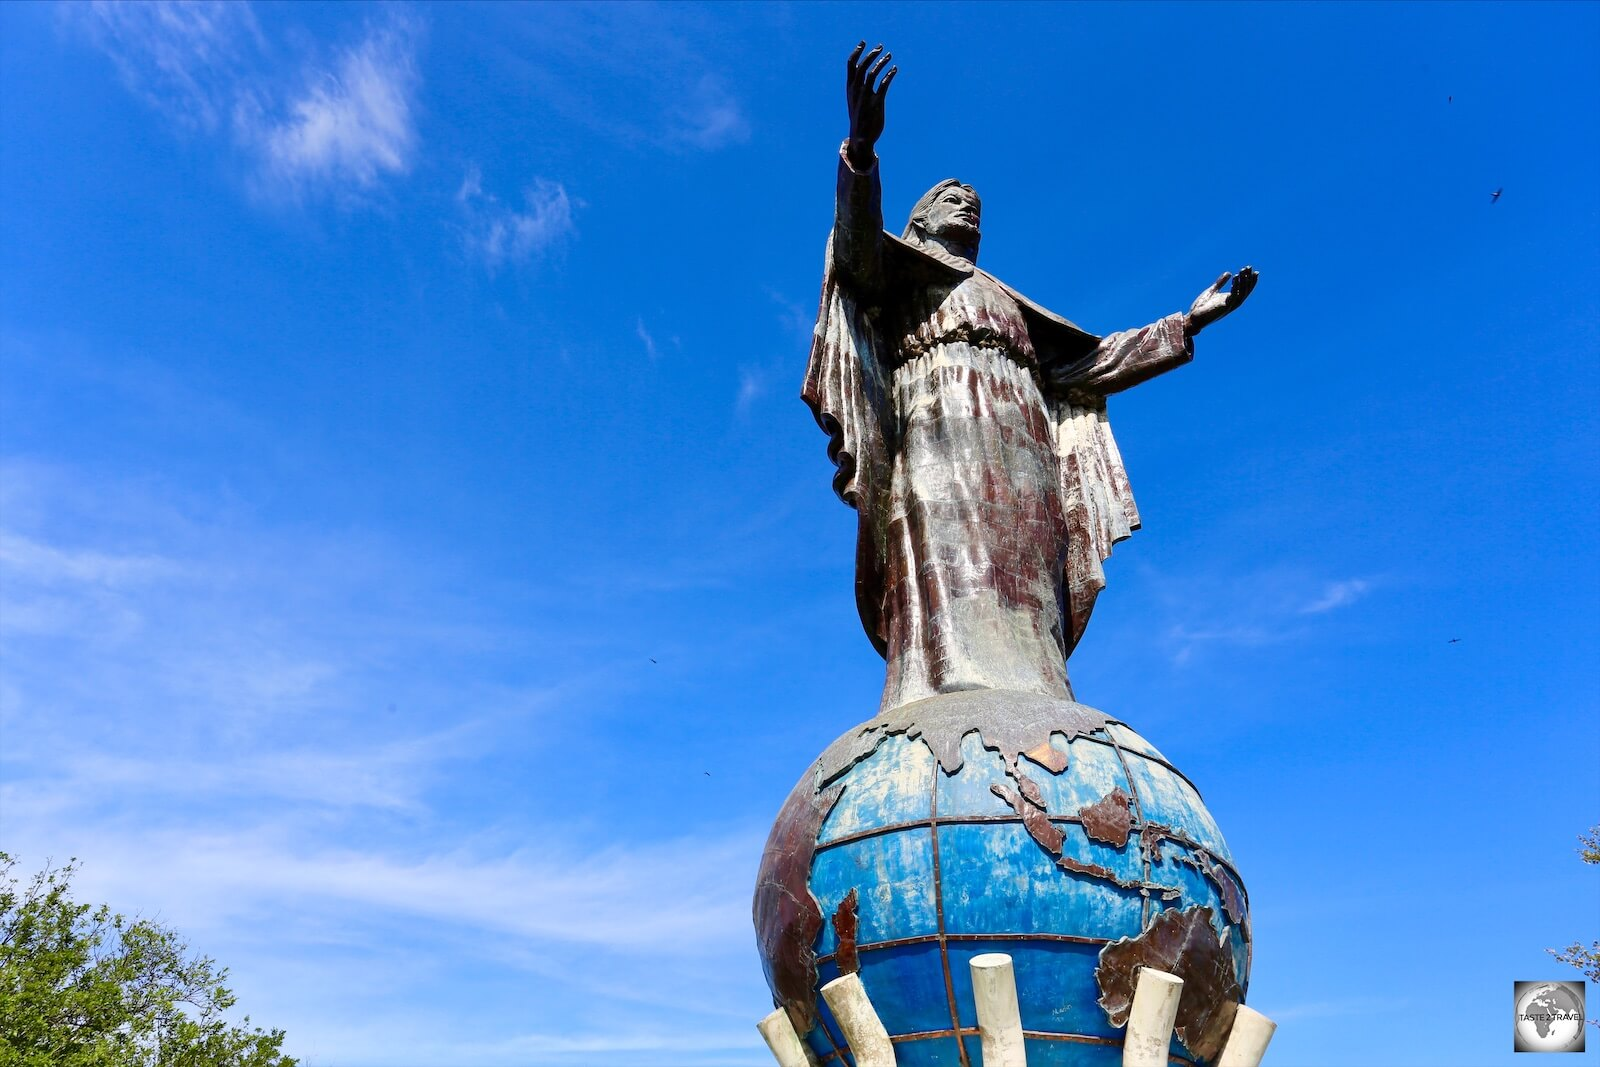 The iconic statue of Cristo Rei, which is located on the summit of Cap Fatucama.